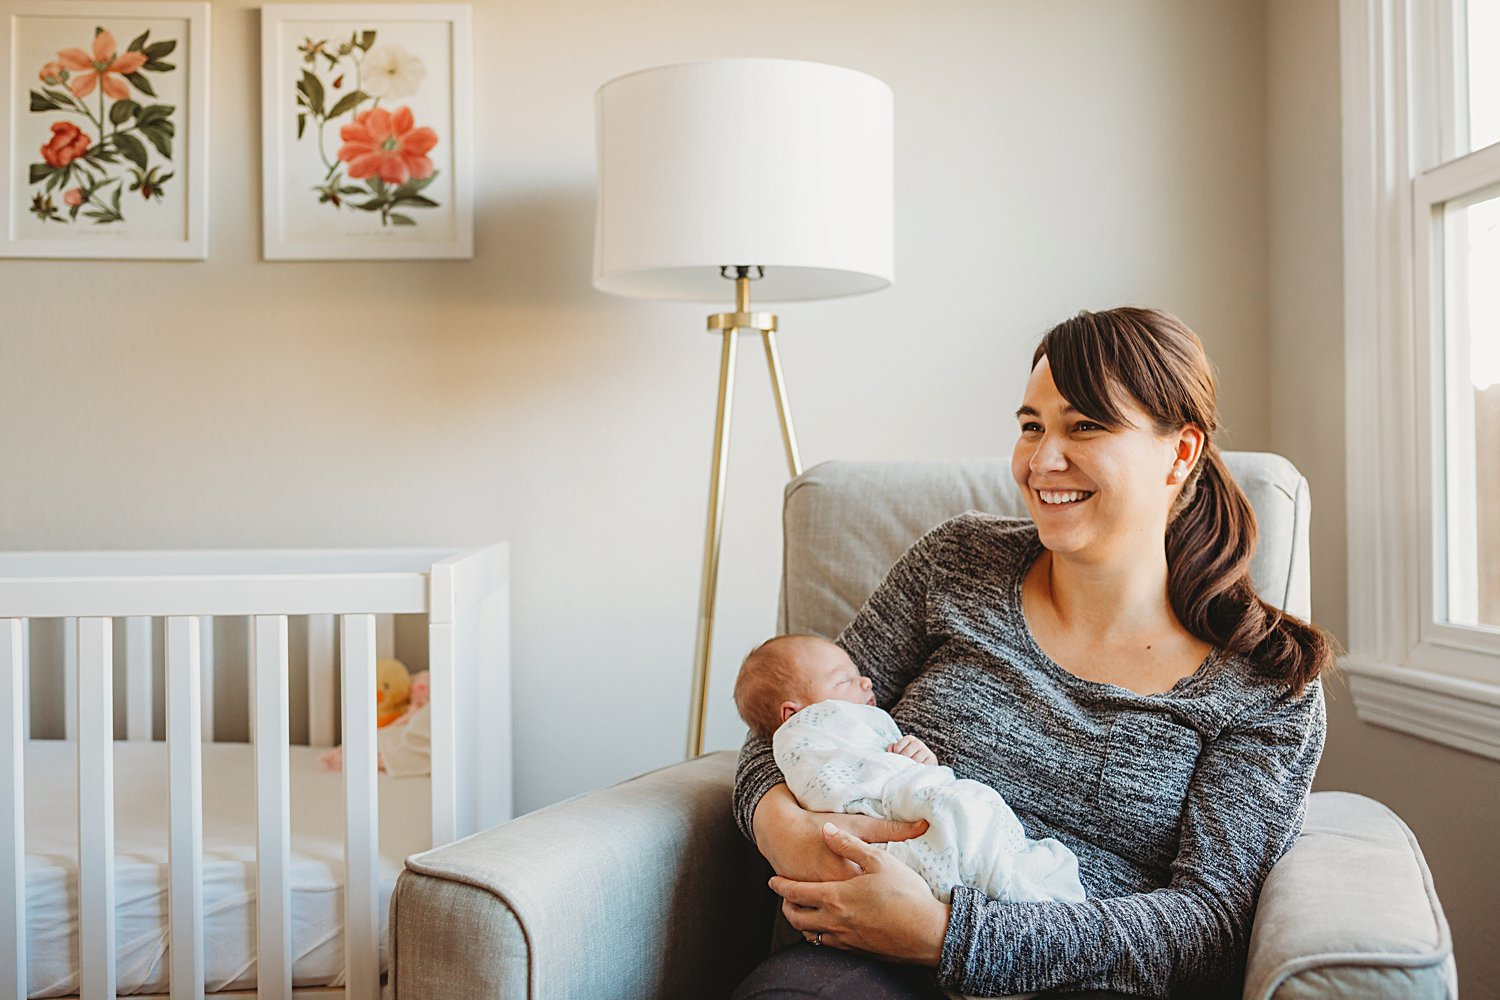 Candid lifestyle photo of mom holding newborn baby in nursery